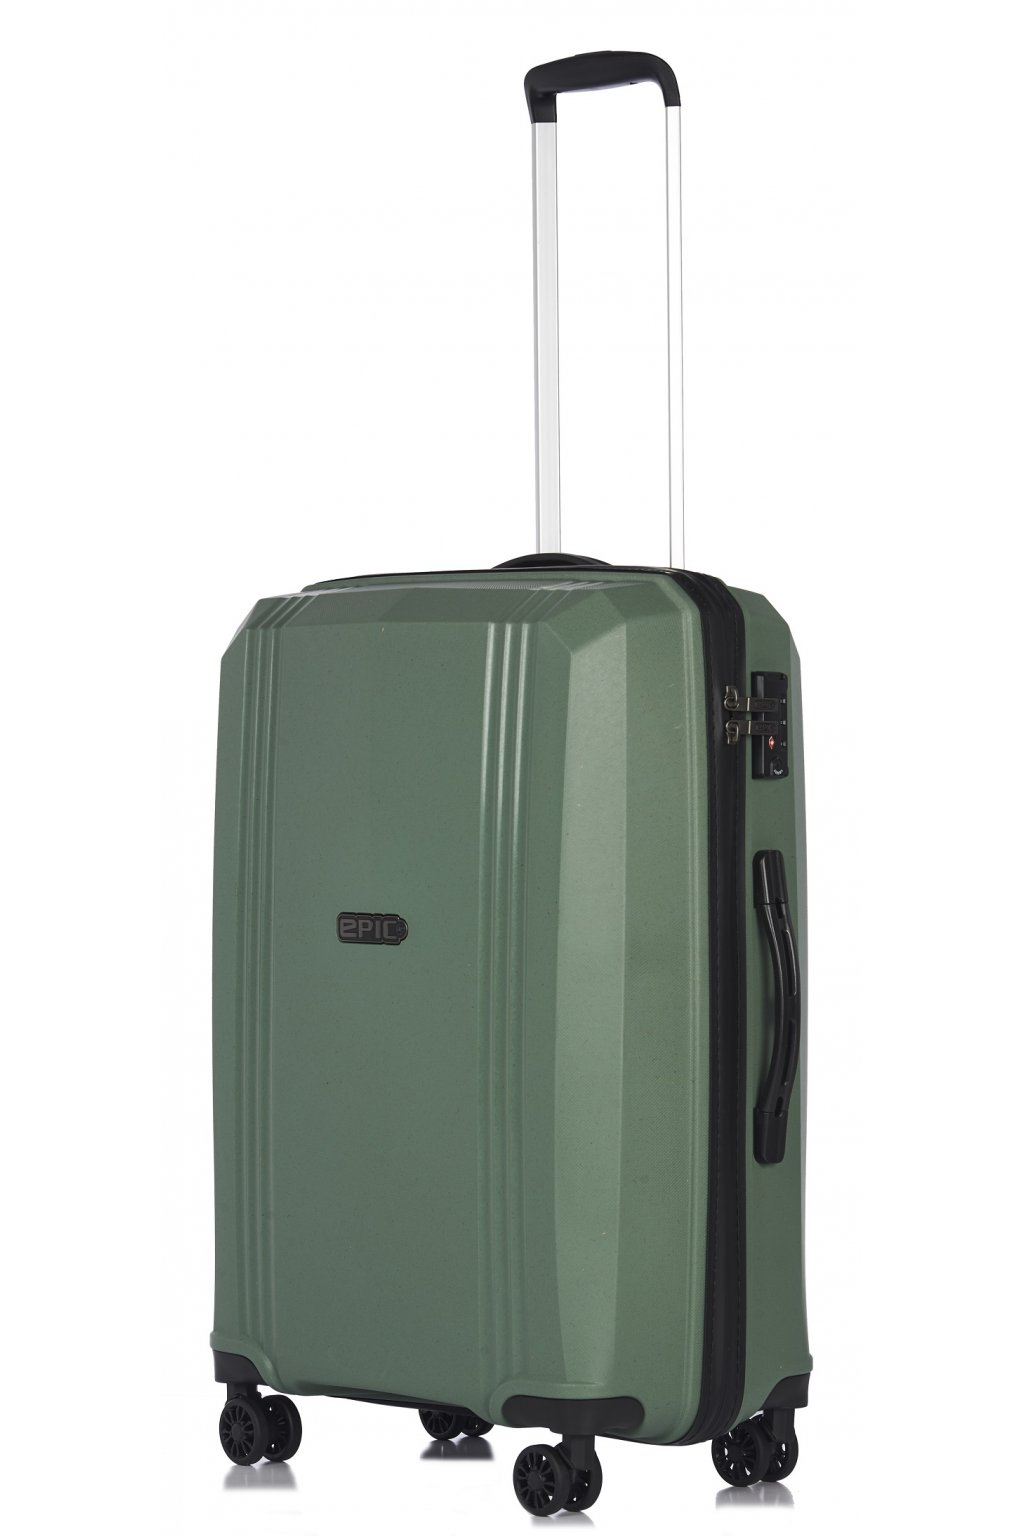 kufrland epic airwawebio green (6)